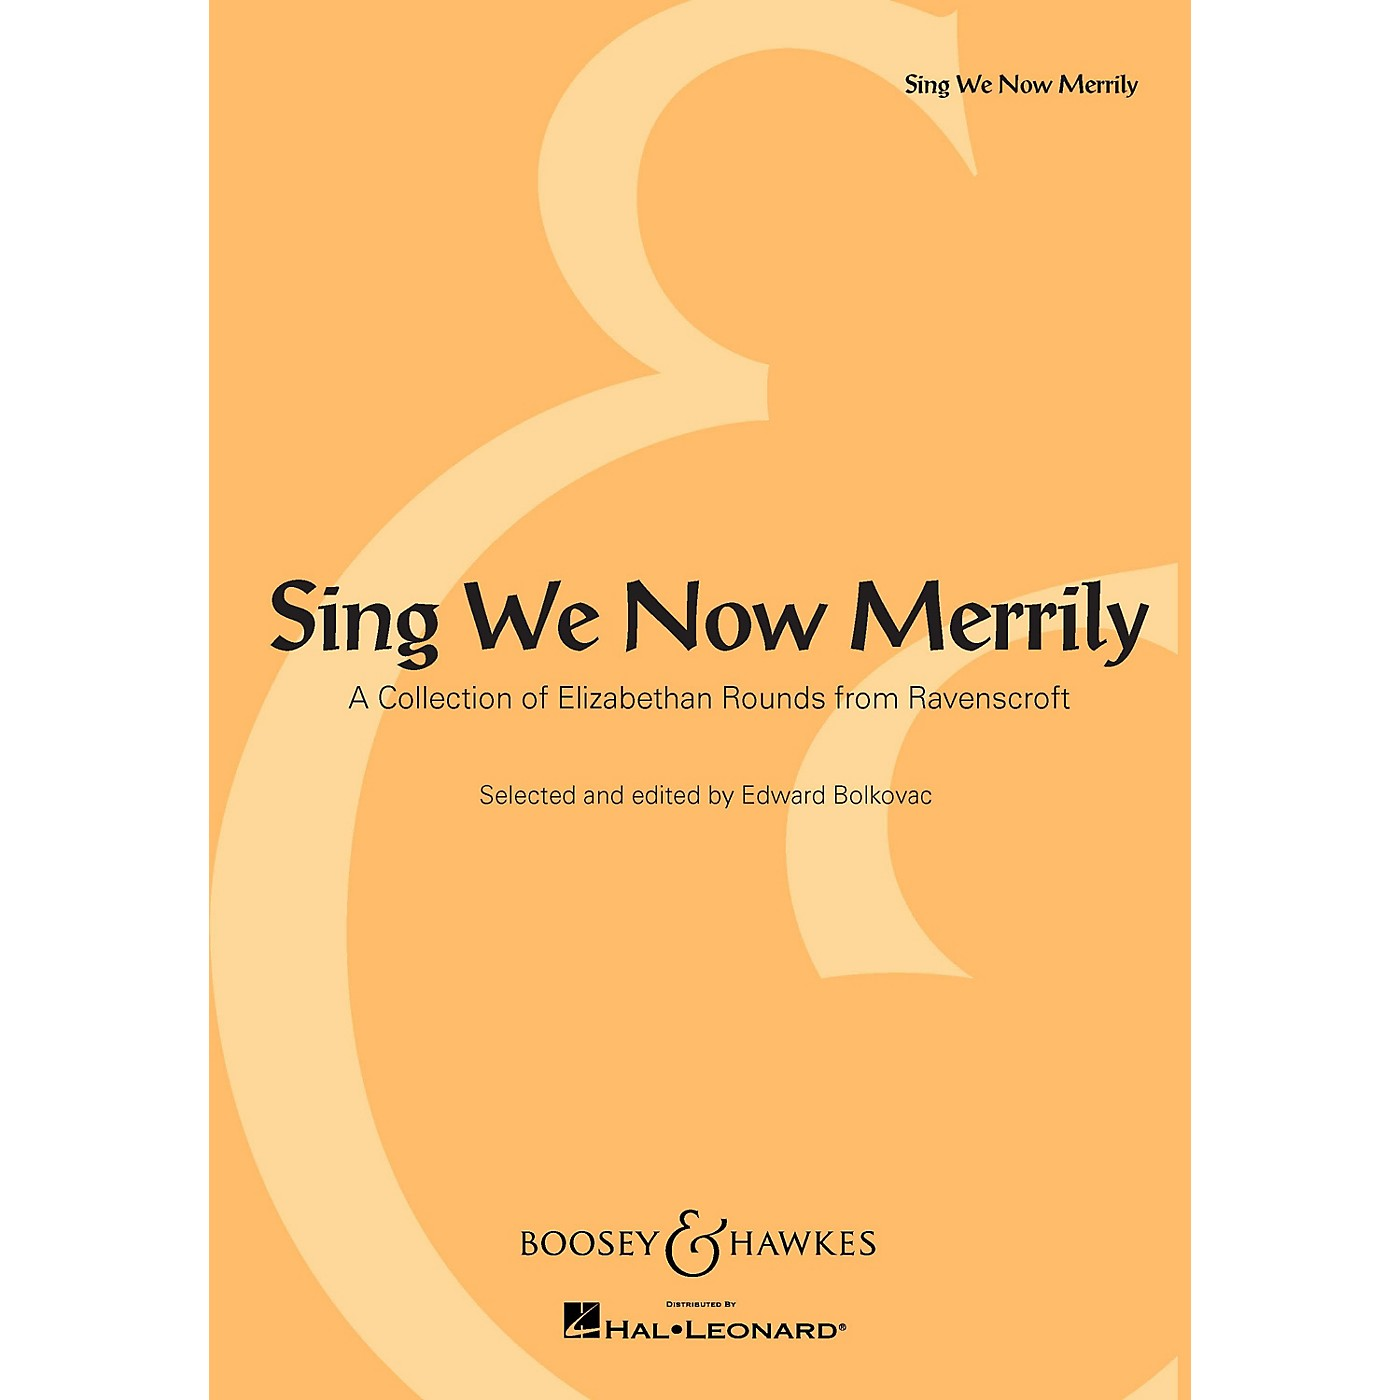 Boosey and Hawkes Sing We Now Merrily (A Collection of Elizabethan Rounds from Ravenscroft) thumbnail